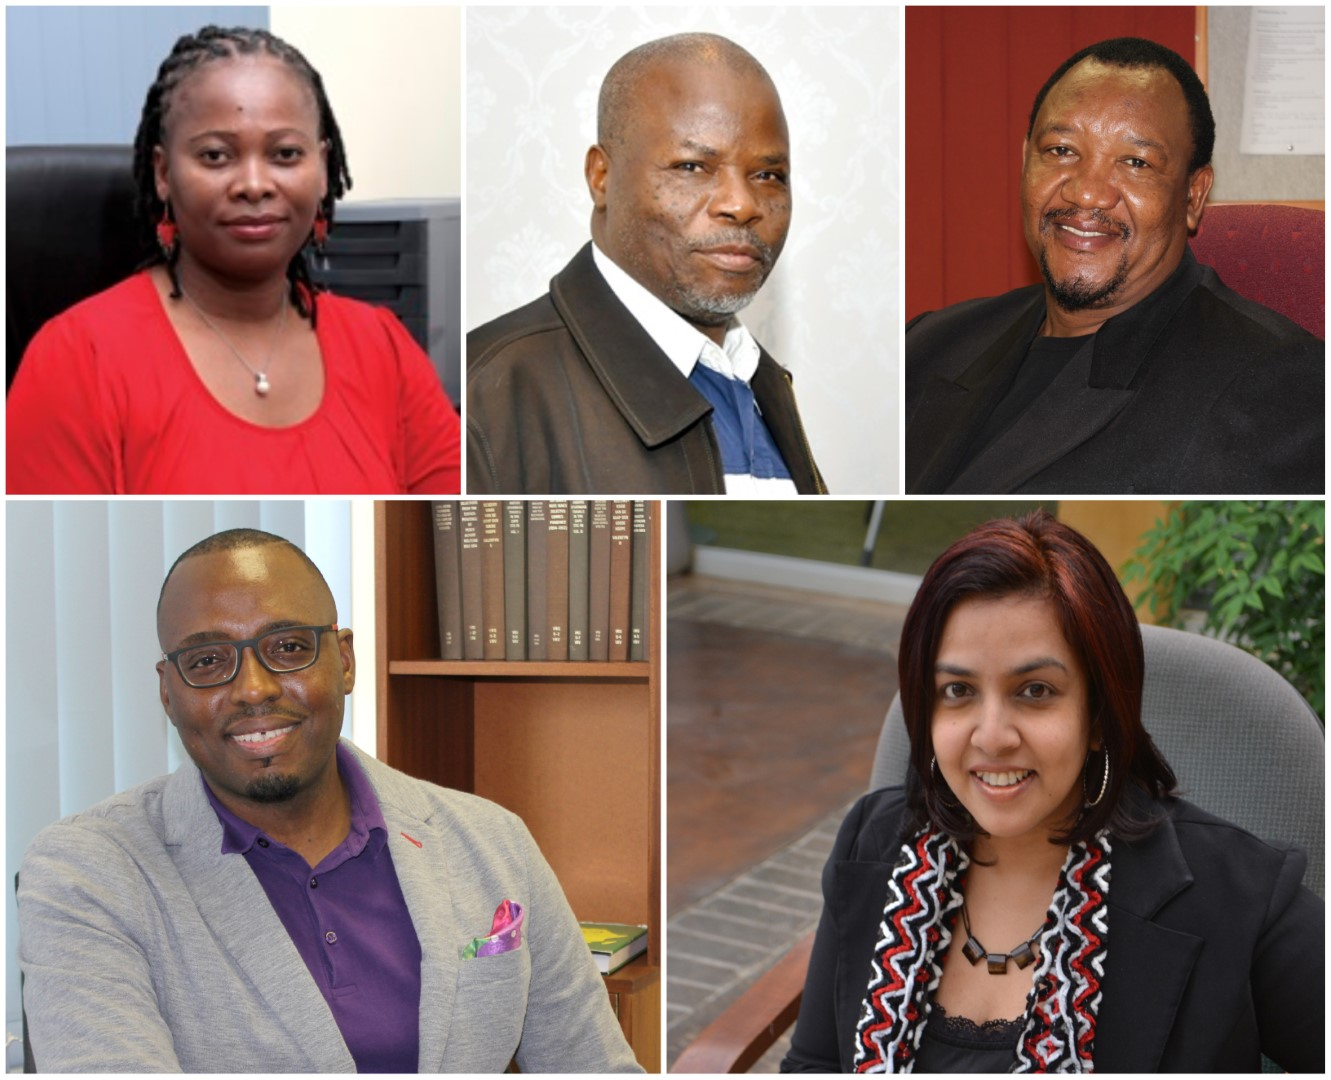 UKZN Academics heading the two Mellon Projects are clockwise from left: Professors Nobuhle Hlongwa, Stephen Mutula, Nogwaja Zulu, Maheshvari Naidu and Ernest Khalema.